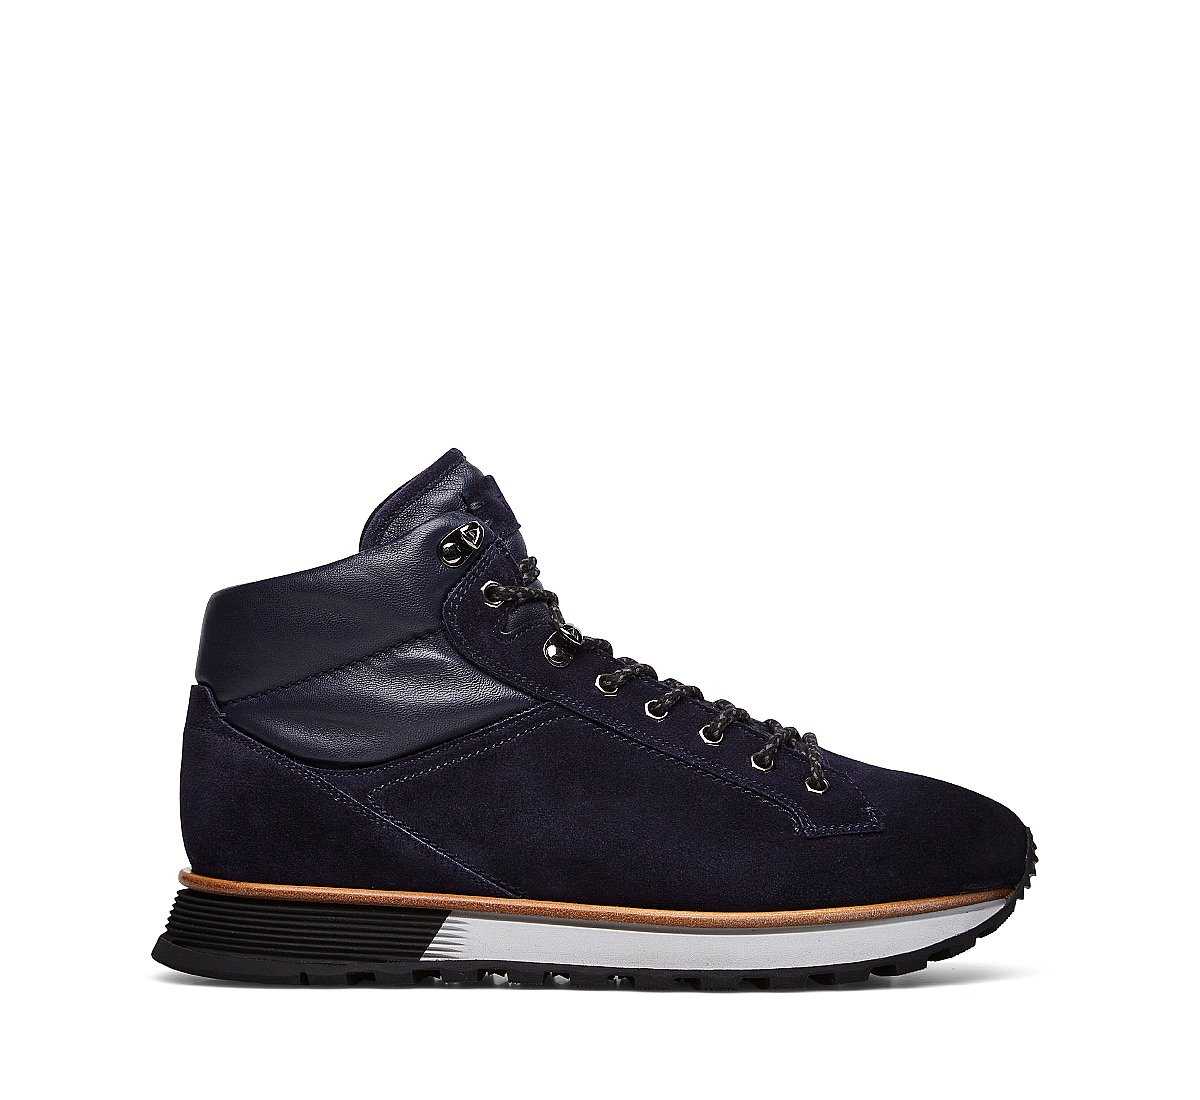 Miramonti boot in soft suede